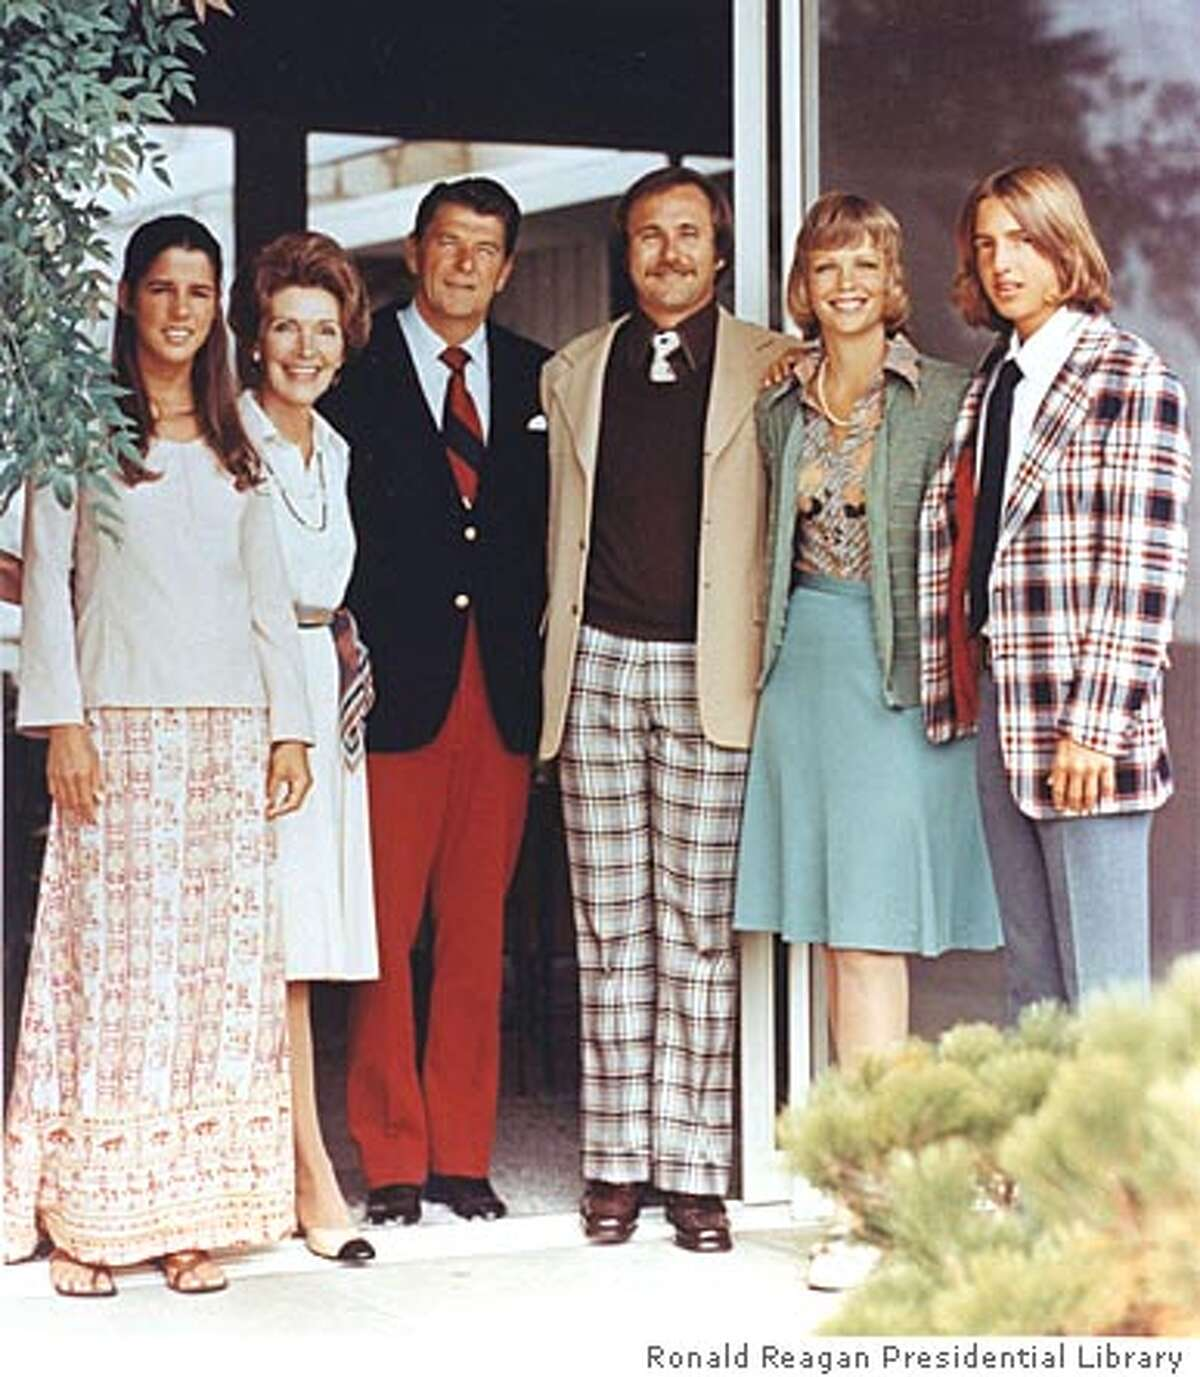 Maureen Reagan (R), the daughter of former President Ronald Reagan and actress Jane Wyman, died of cancer on August 8, 2001 in her northern California home, her family said in a statement. United States president Ronald Reagan and wife Nancy and the Reagan children are shown in this 1976 photograph outside Reagan's Pacific Palisades house. Shown (L-R) are Patti, Nancy Reagan, Ronald Reagan, Michael Reagan, Maureen Reagan and Ron Reagan. REUTERS/Reagan Family Photo Collection/Courtesy Ronald Reagan Presidential Library